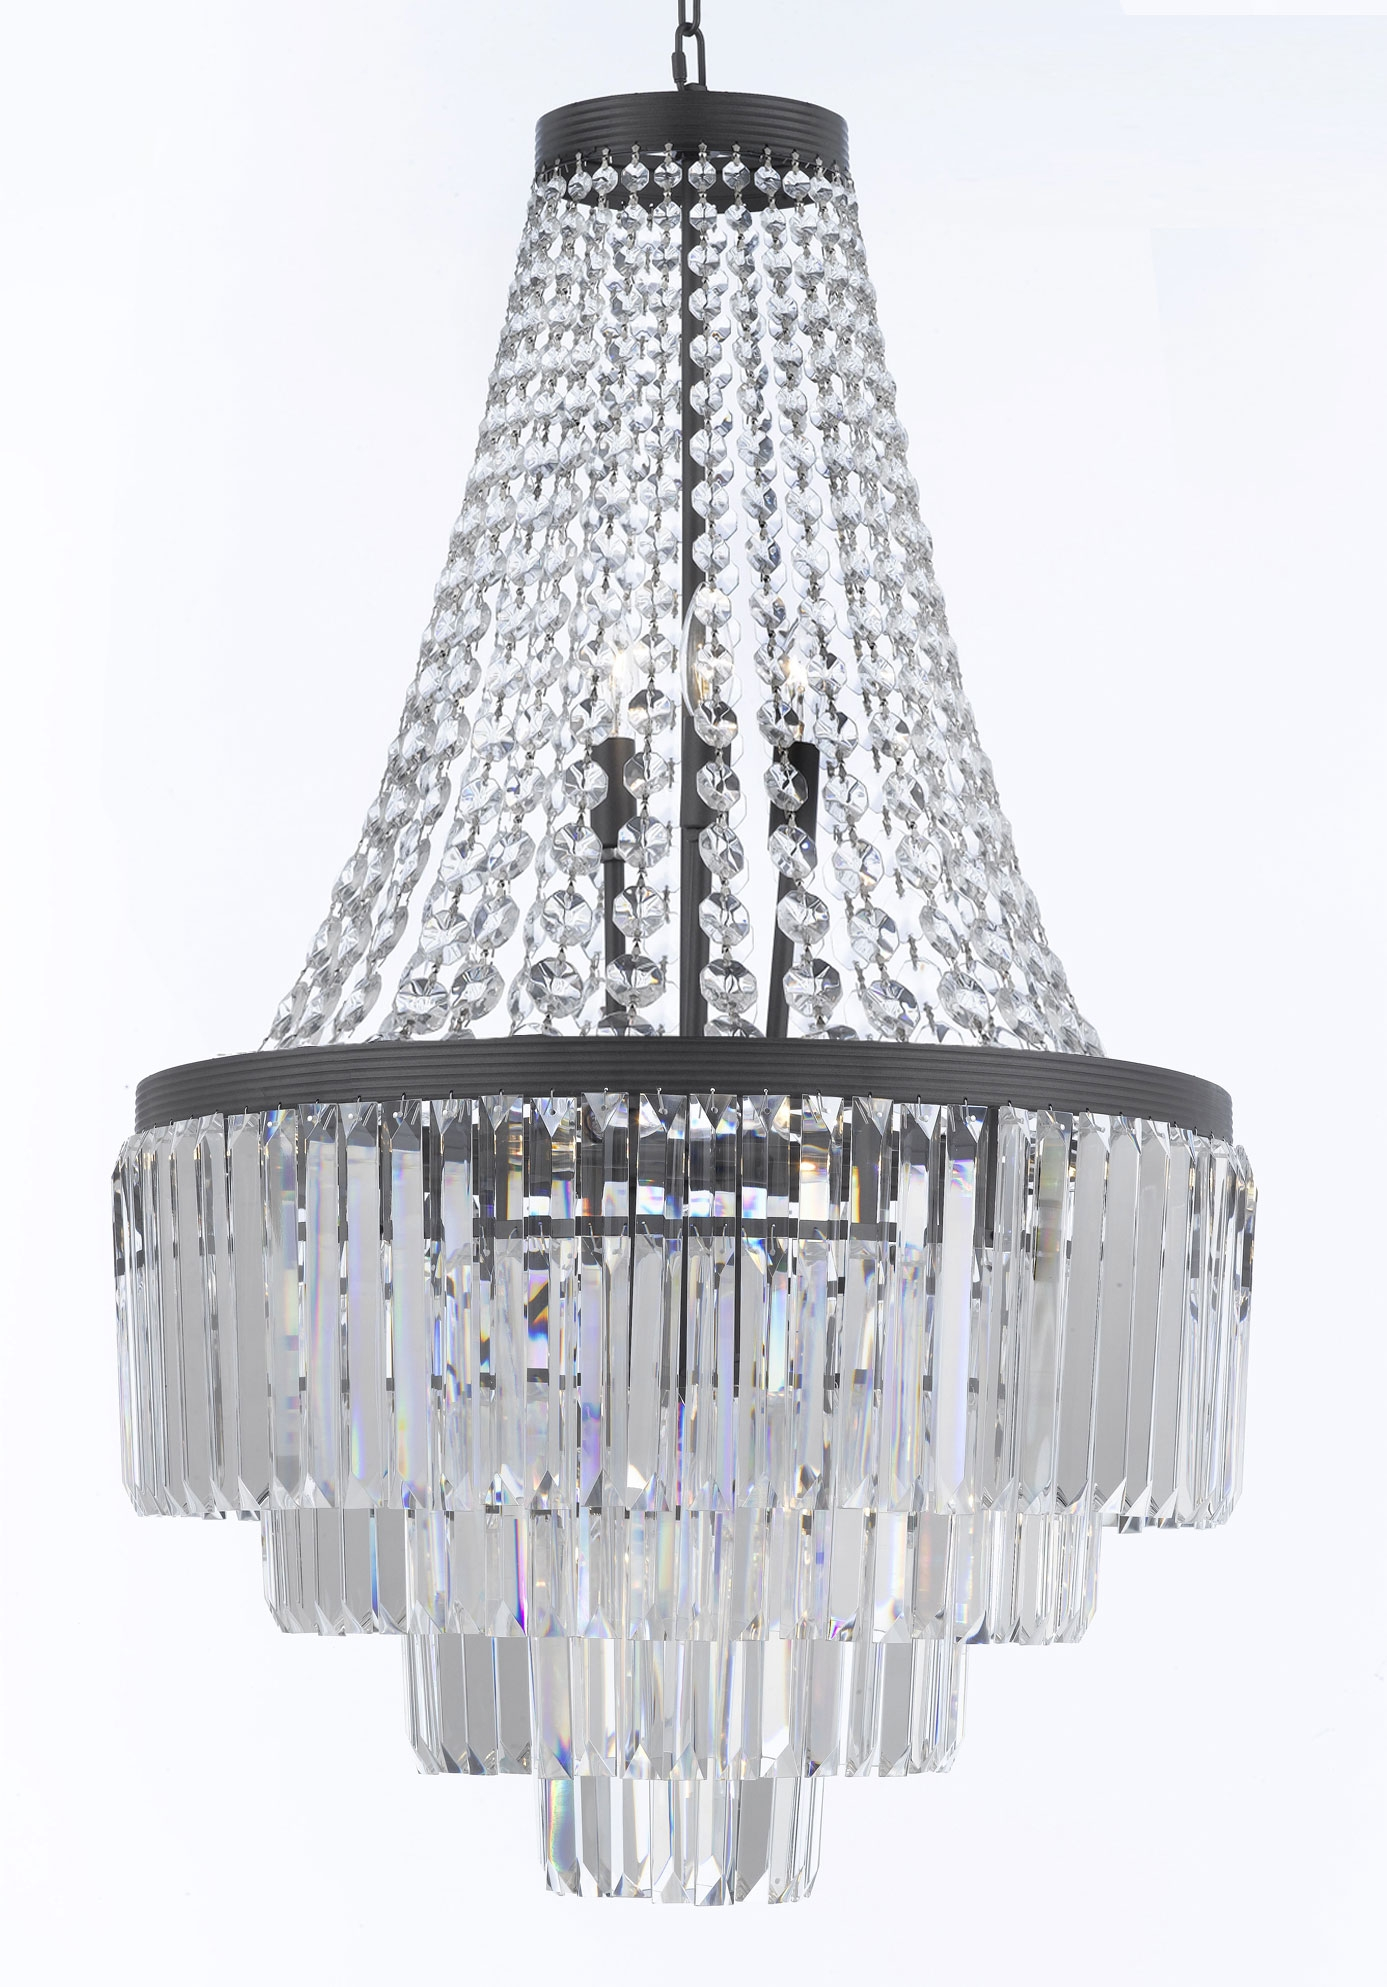 G7 11009 Gallery Chandeliers Retro Odeon Crystal Glass Fringe 3 Throughout 3 Tier Crystal Chandelier (View 5 of 15)